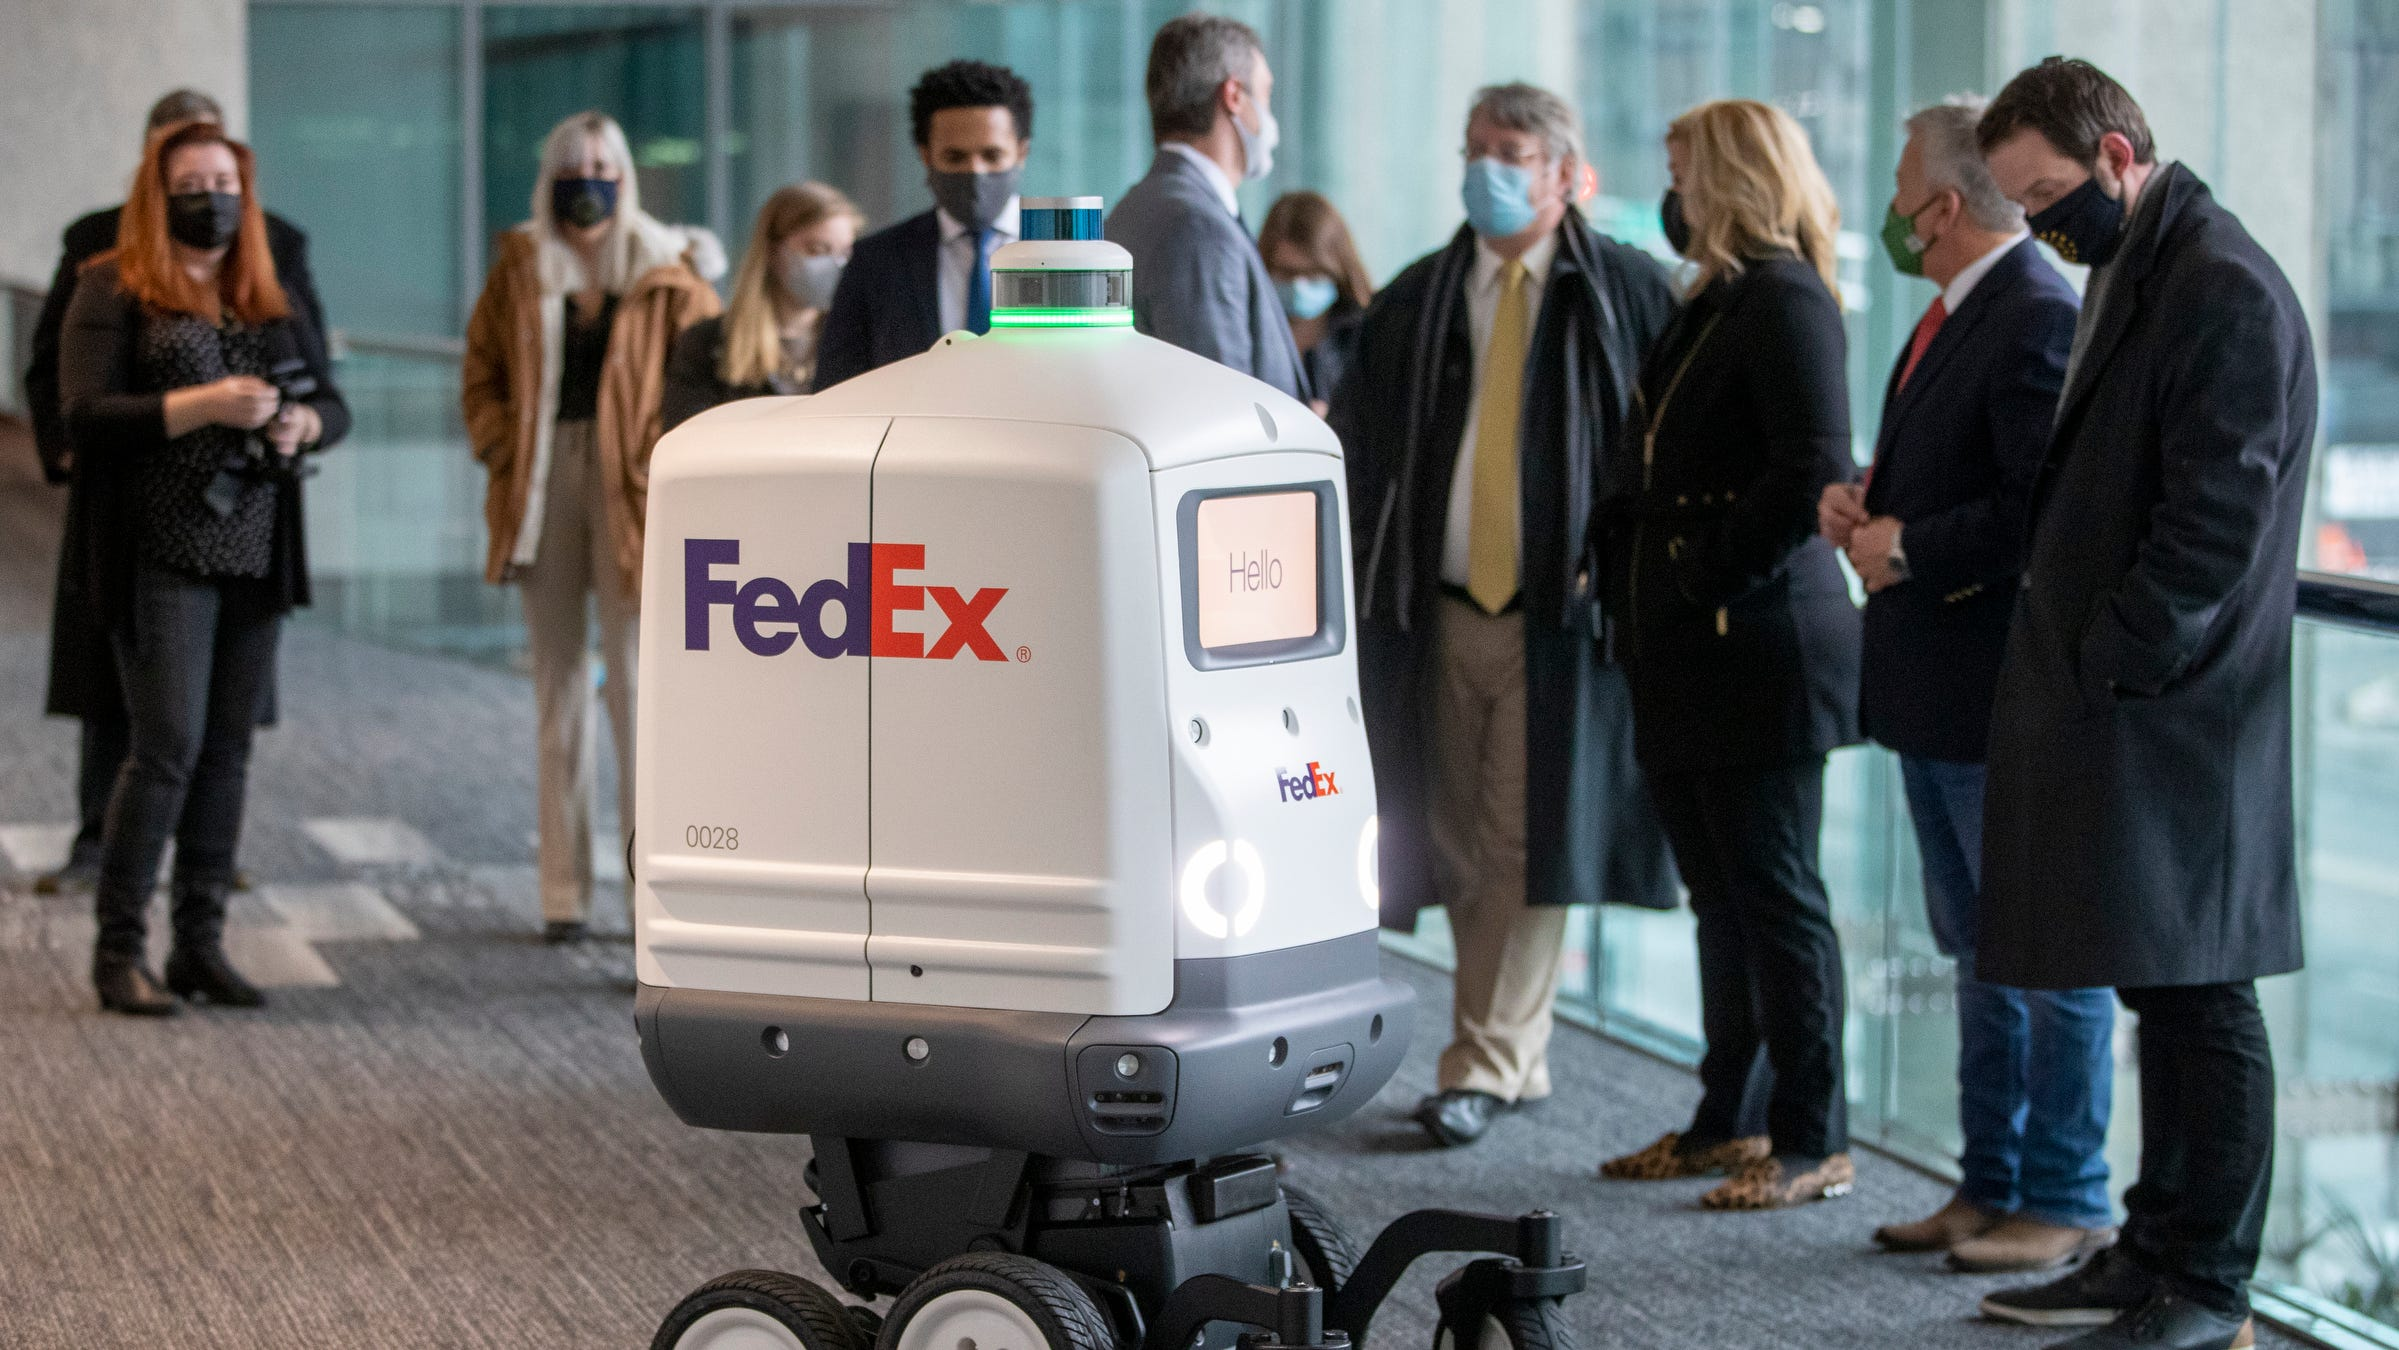 Ready for a robot to deliver your packages? New Oklahoma law allows ground-based drones